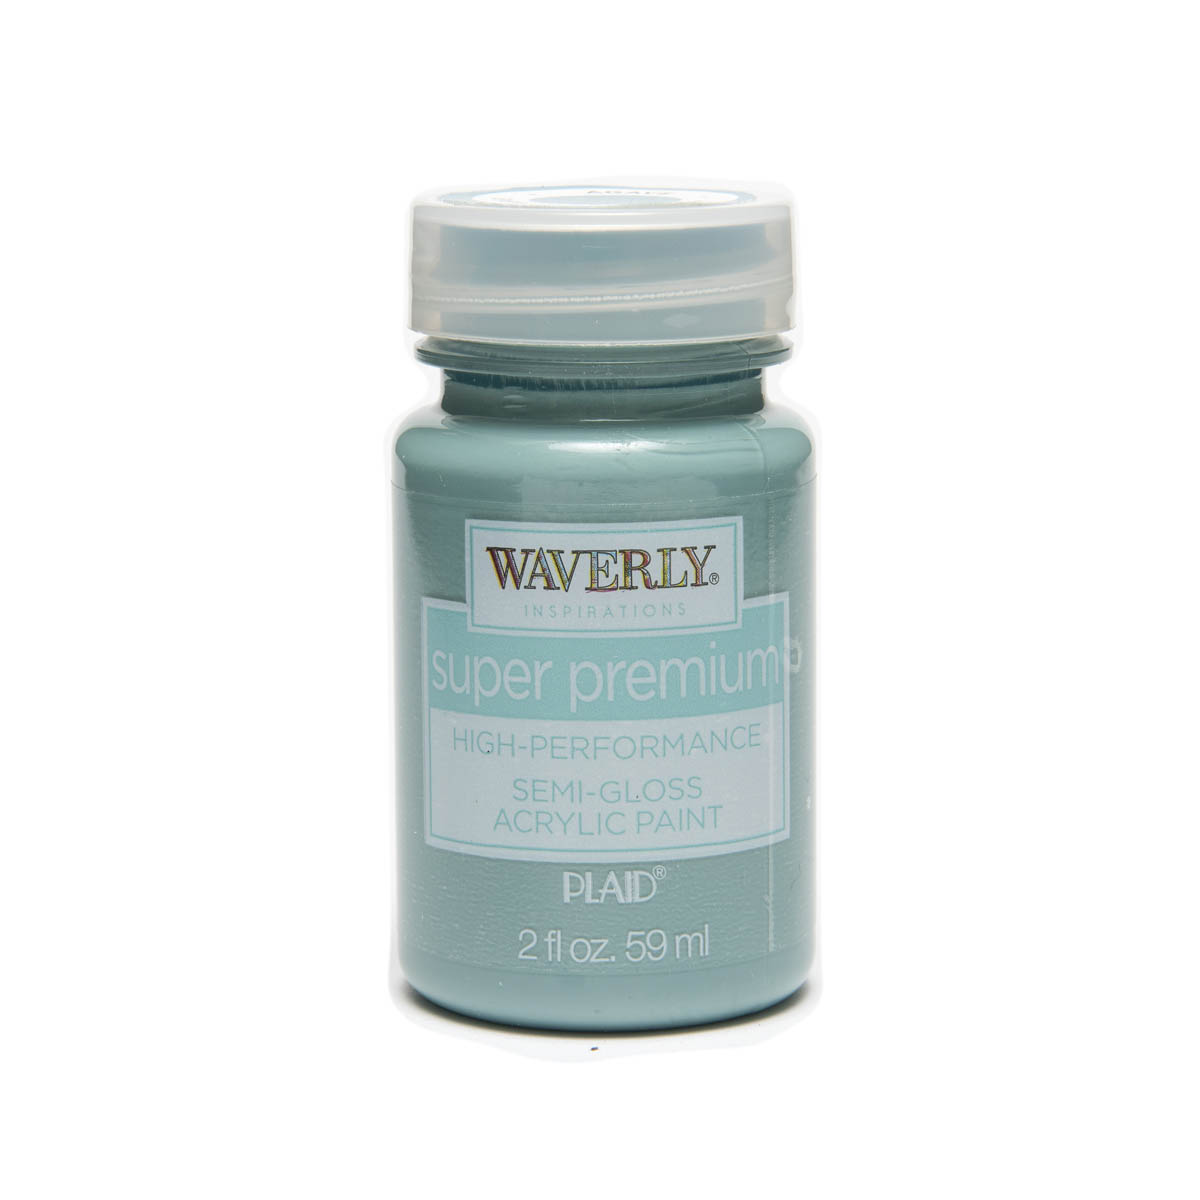 Waverly ® Inspirations Super Premium Semi-Gloss Acrylic Paint - Agave, 2 oz.